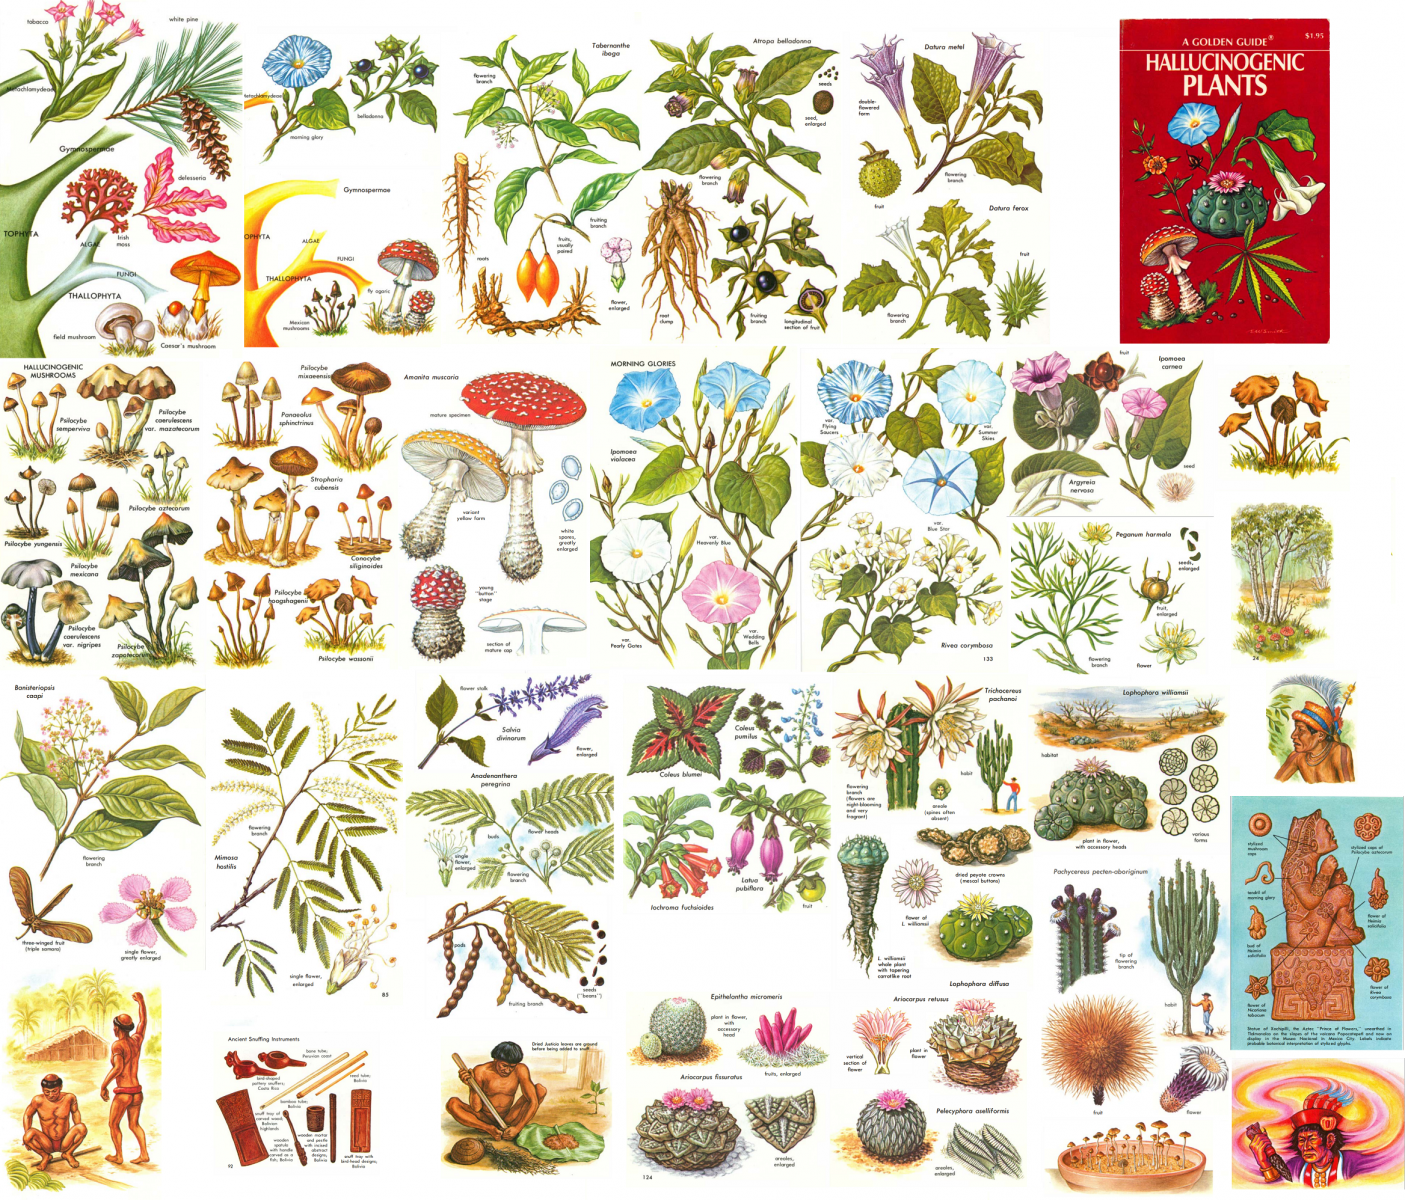 A Golden Guide to Hallucinogenic Plants